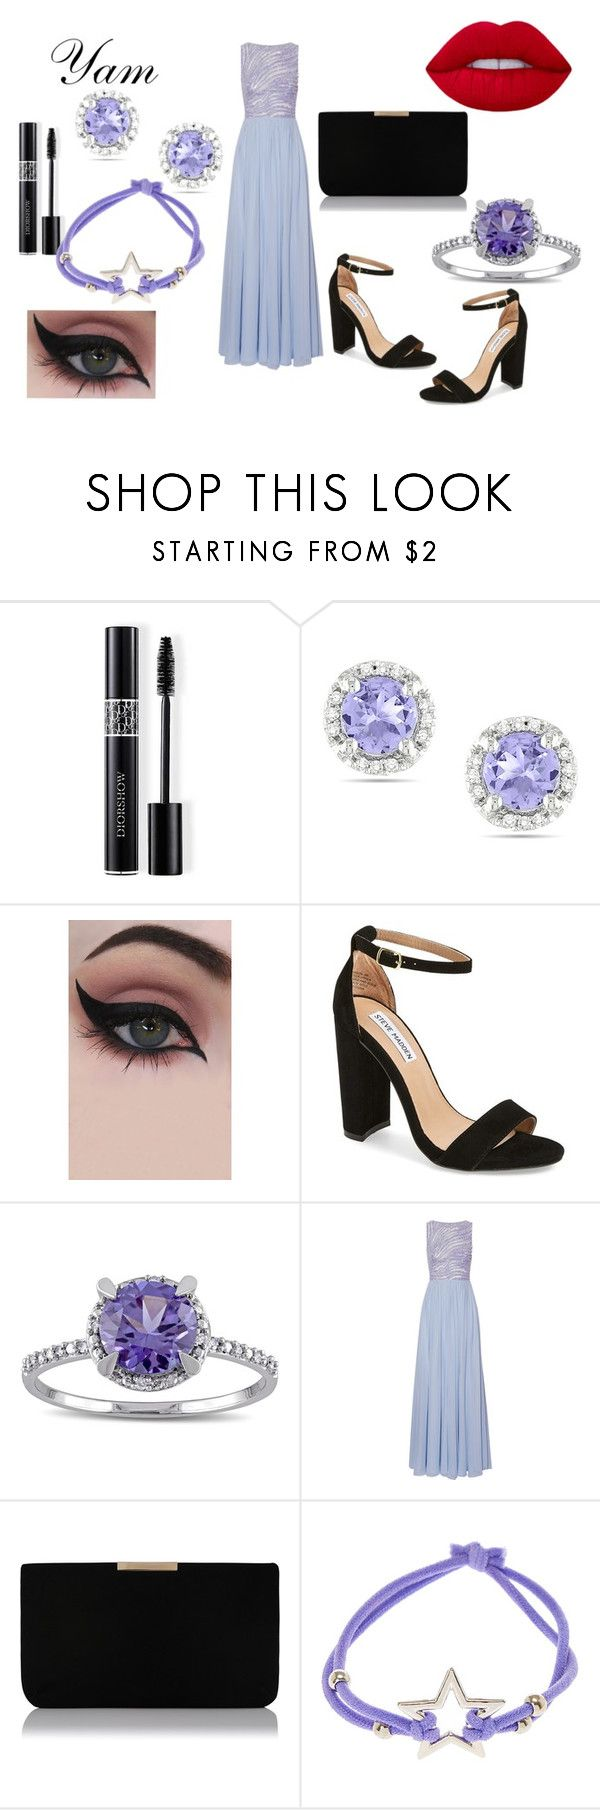 """""""Sol antes de Luna"""" by love1662002 on Polyvore featuring Christian Dior, Ice, Concrete Minerals, Steve Madden, Miadora, Zuhair Murad and L.K.Bennett"""